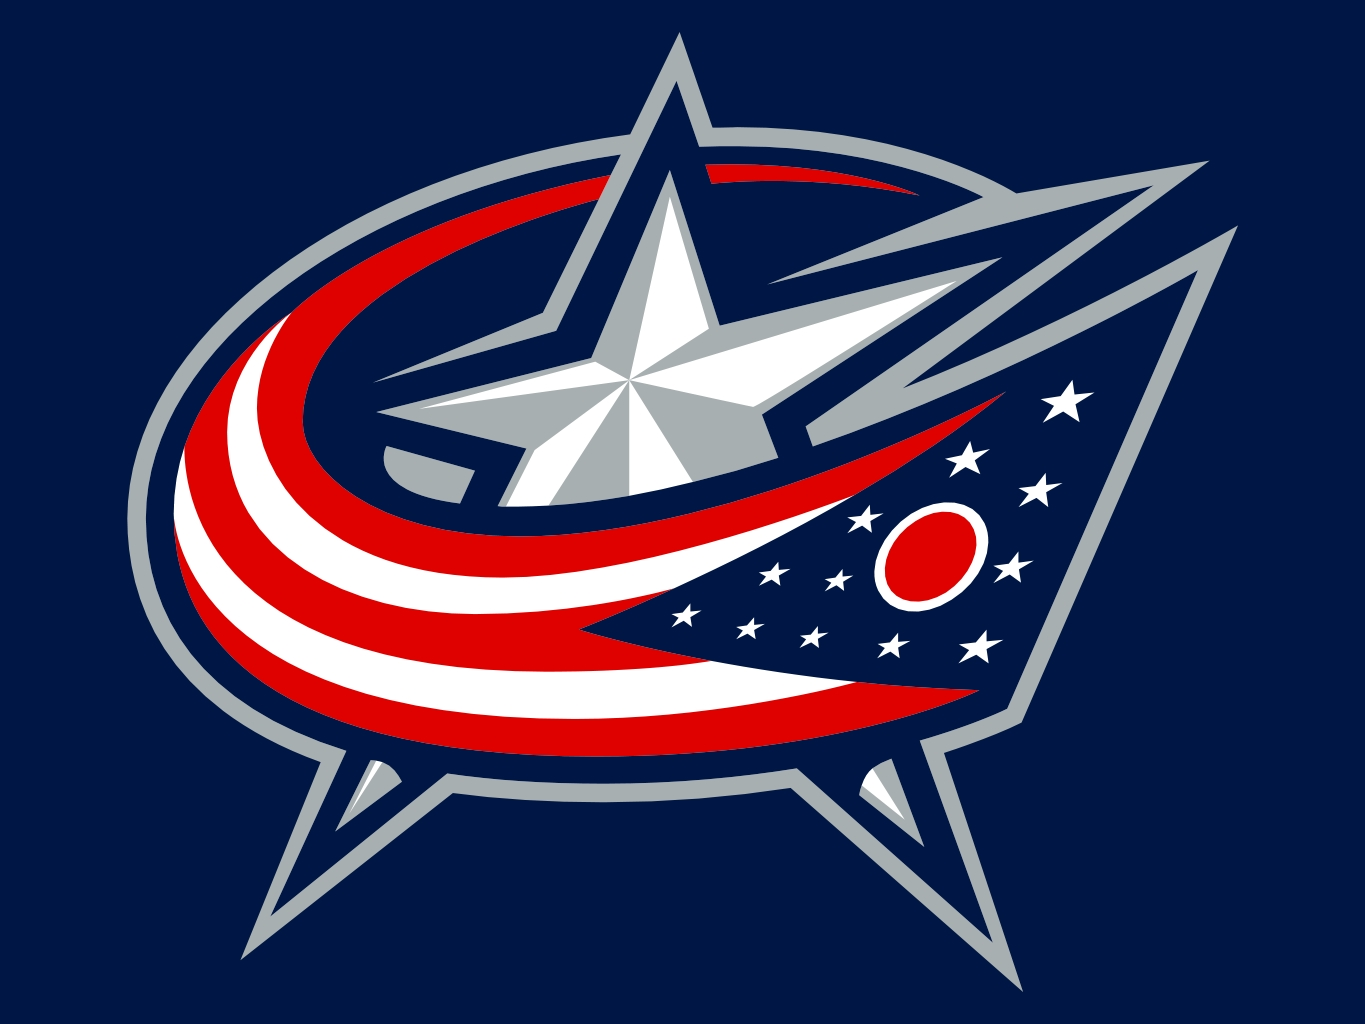 Buy Columbus Blue Jackets Tickets Today